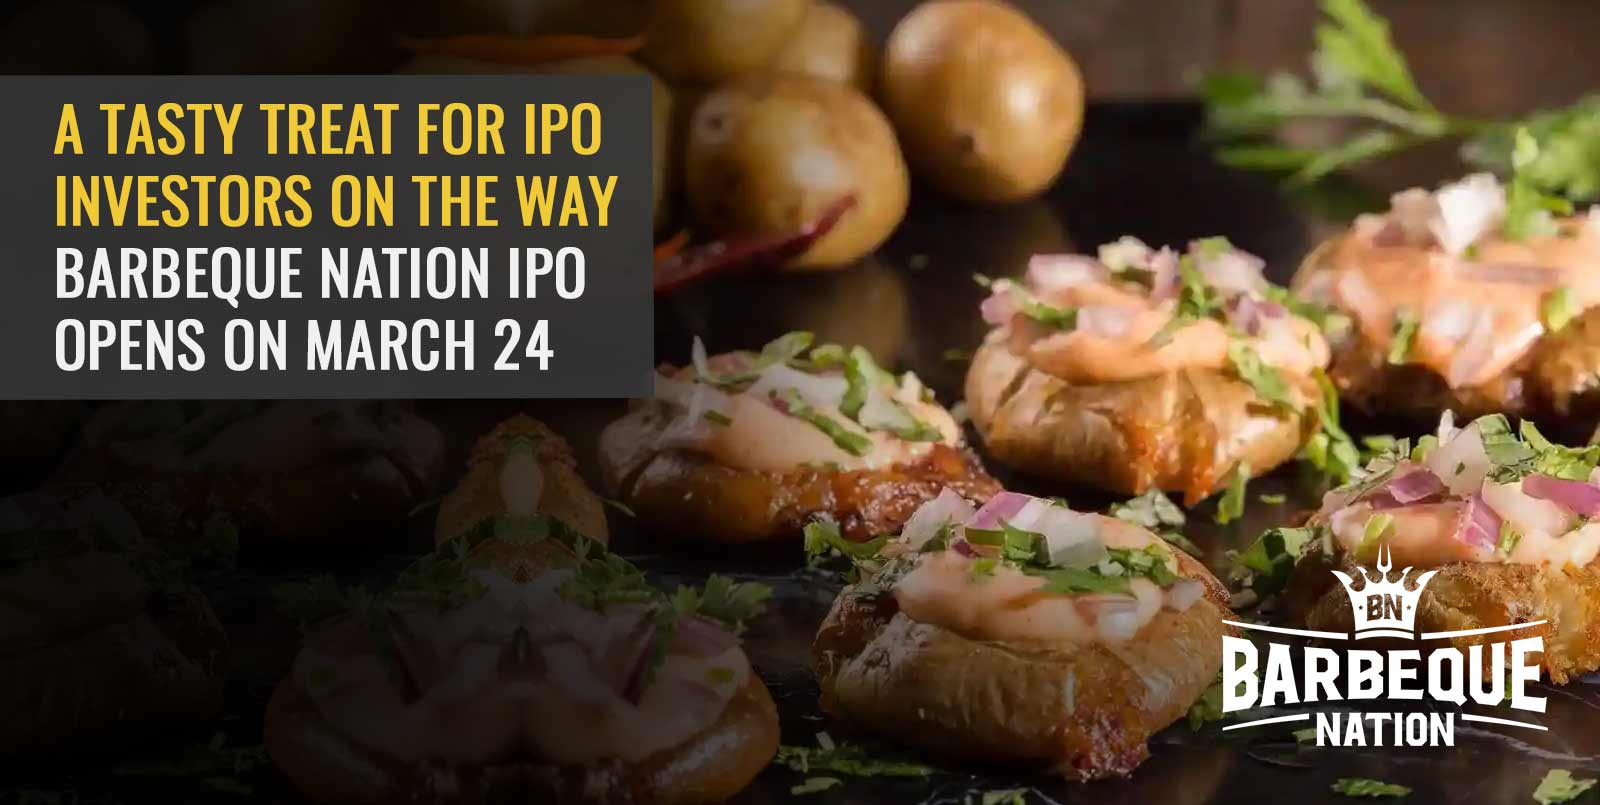 A Tasty Treat For IPO Investors On The Way: Barbeque Nation IPO Opens on March 24